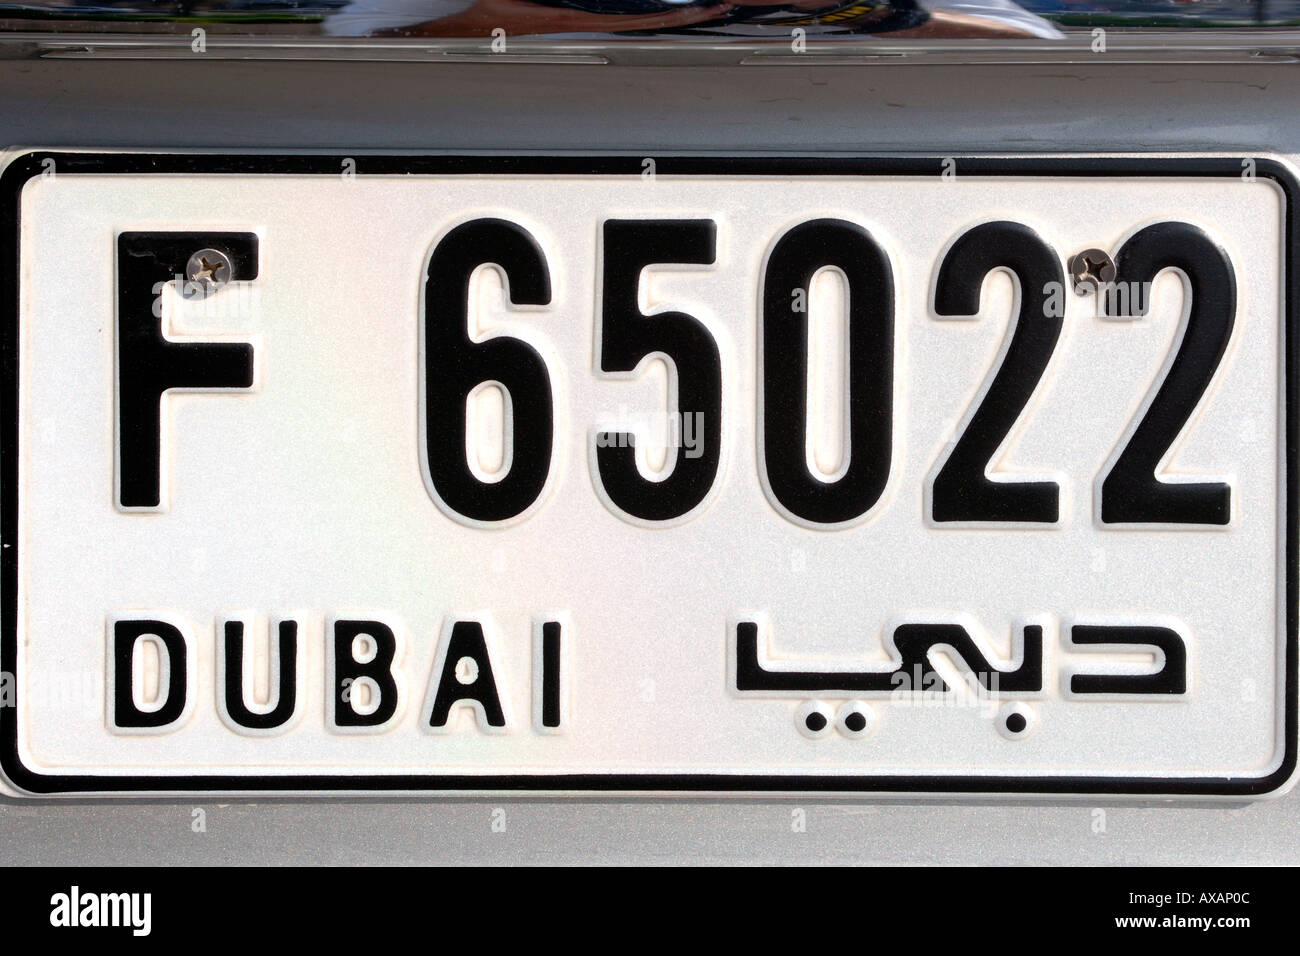 Car number plates in Dubai Stock Photo: 5479947 - Alamy